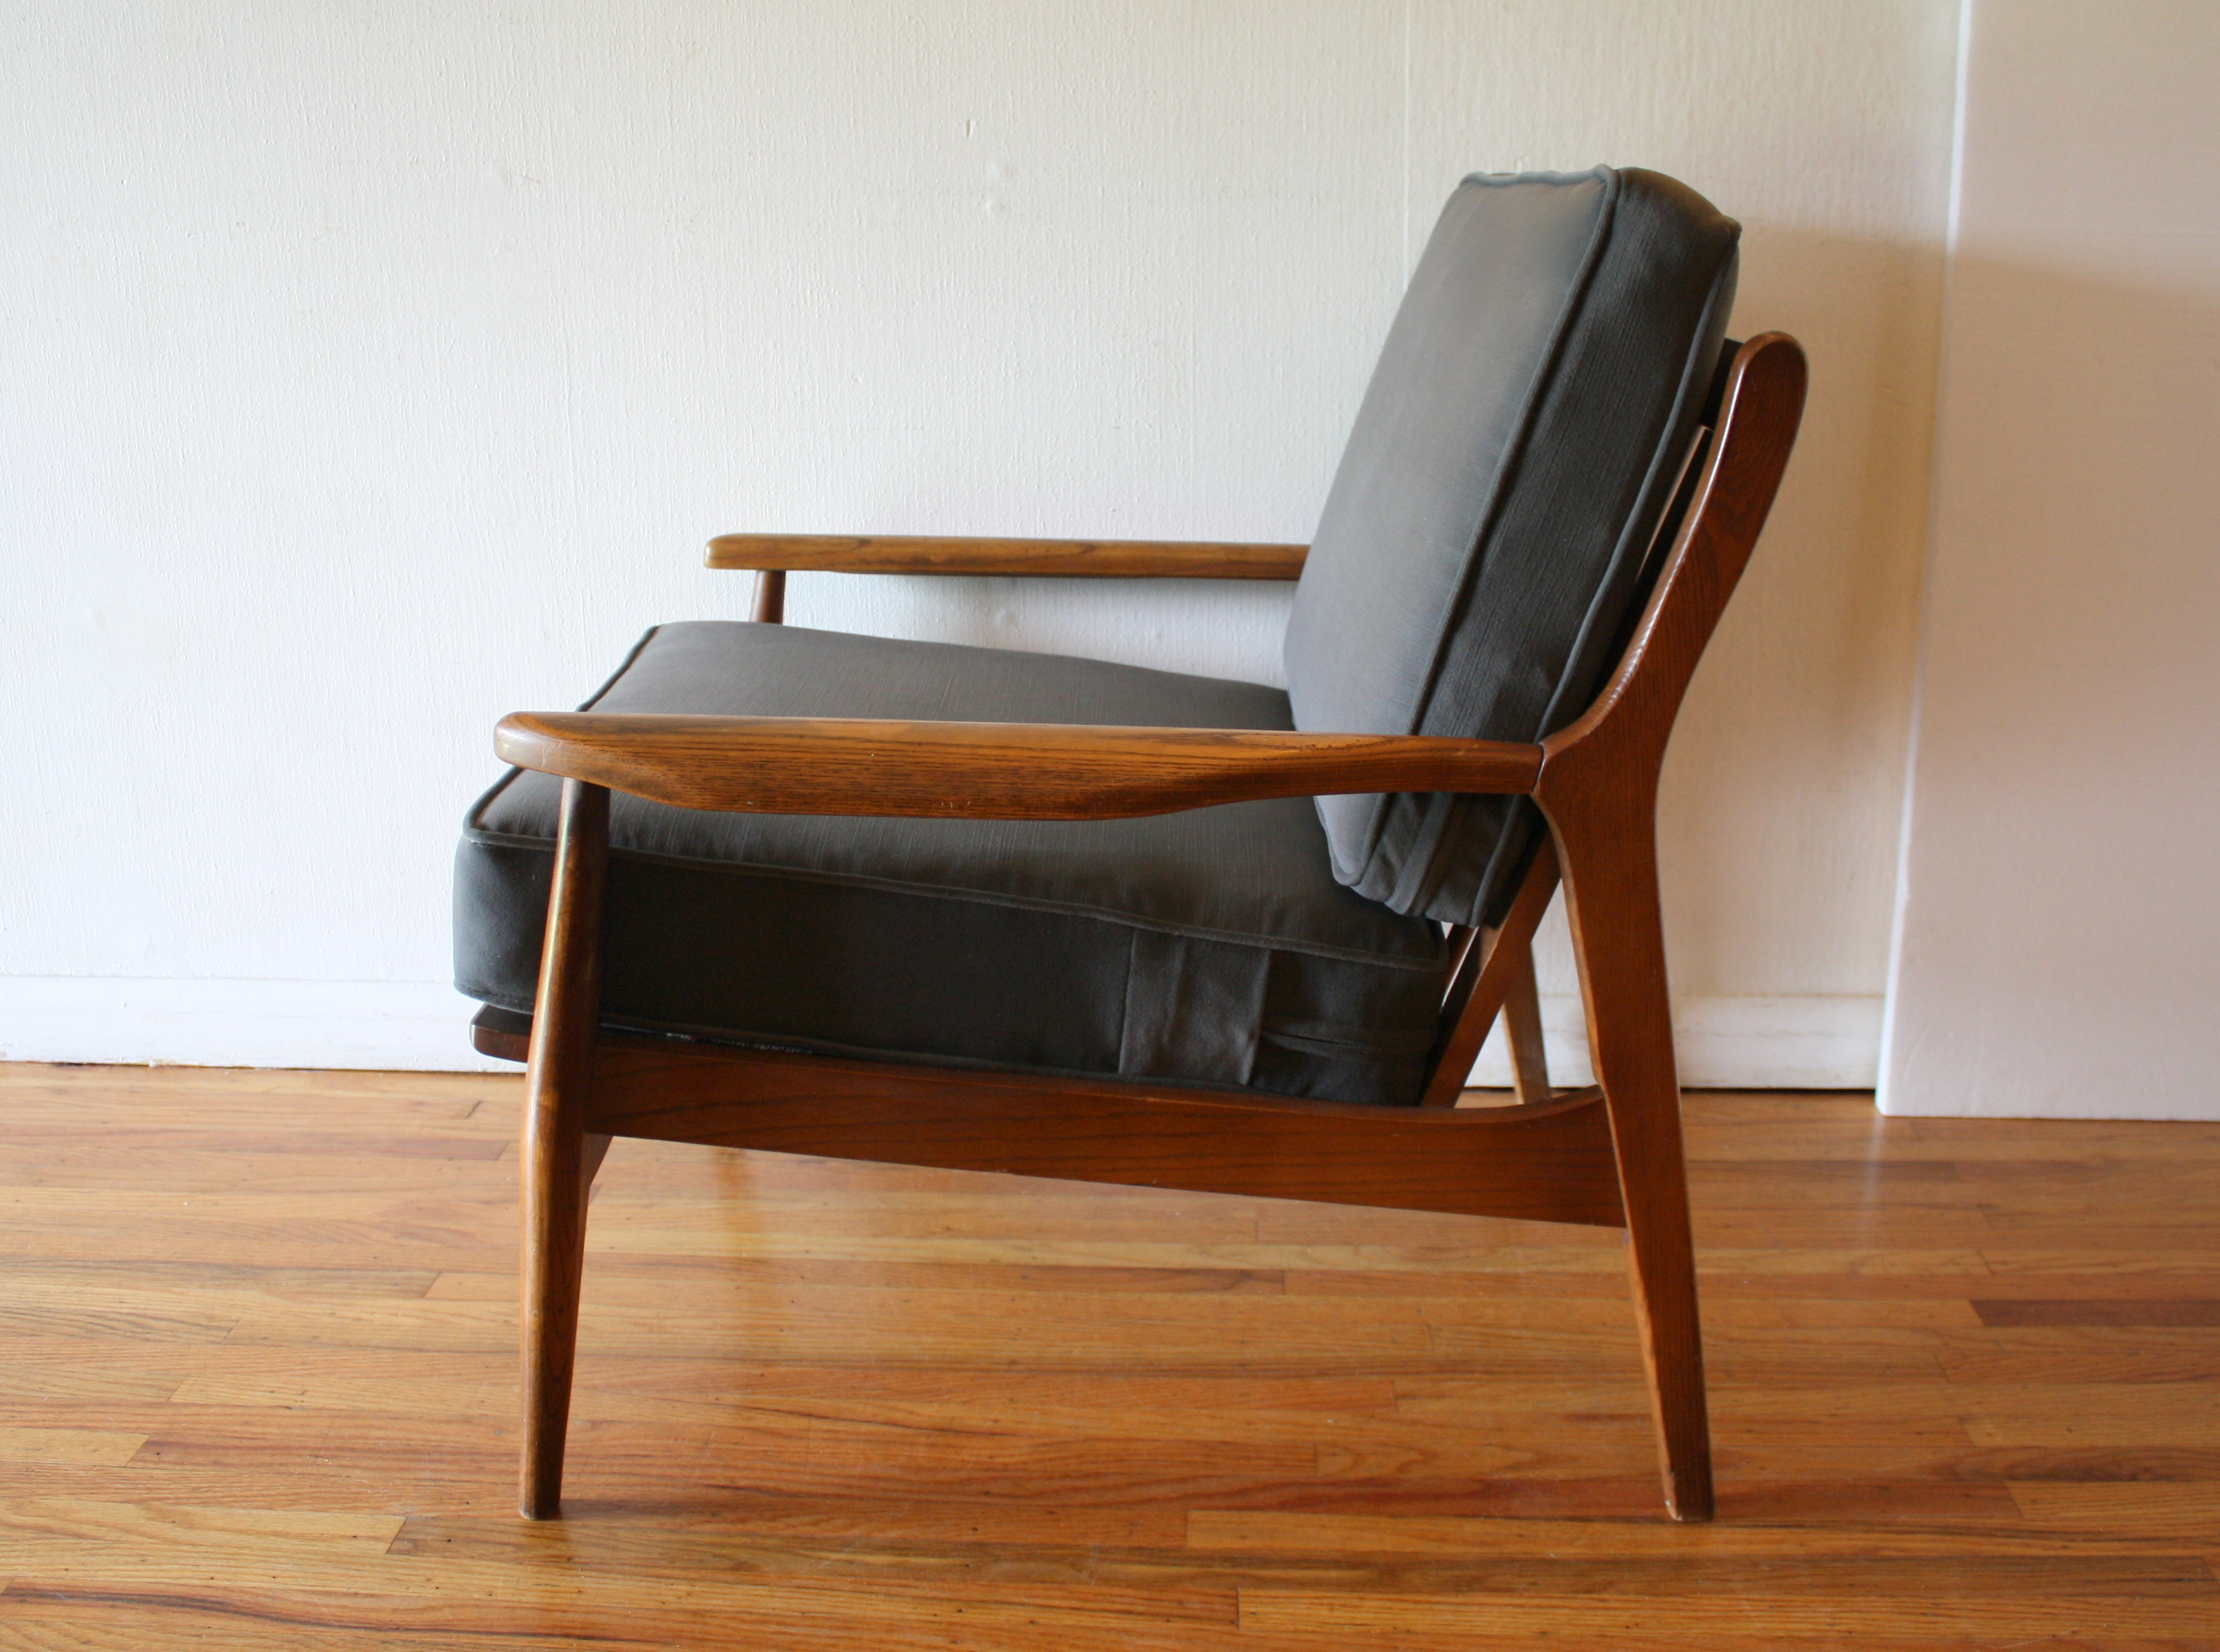 Pleasant Mid Century Modern Arm Chair Picked Vintage Machost Co Dining Chair Design Ideas Machostcouk